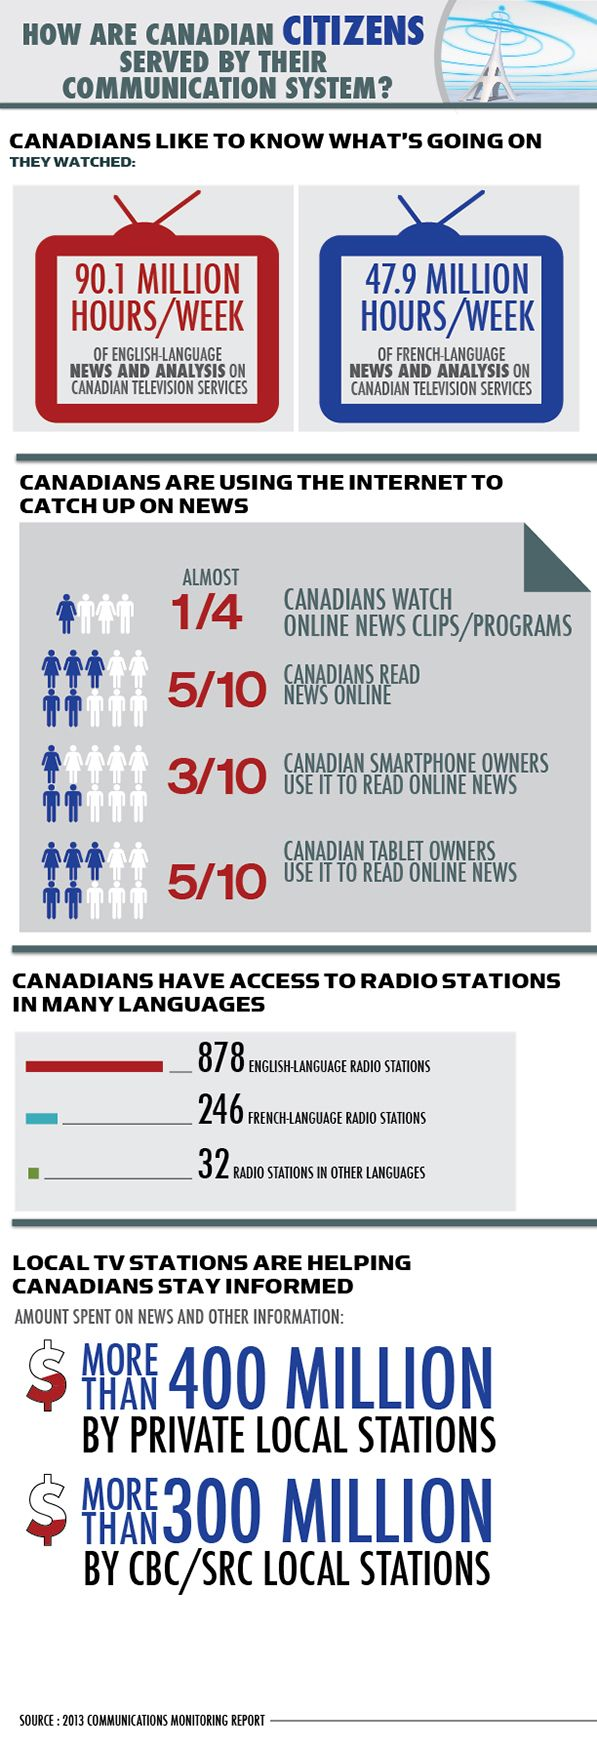 CRTC How are Canadian citizens served by their